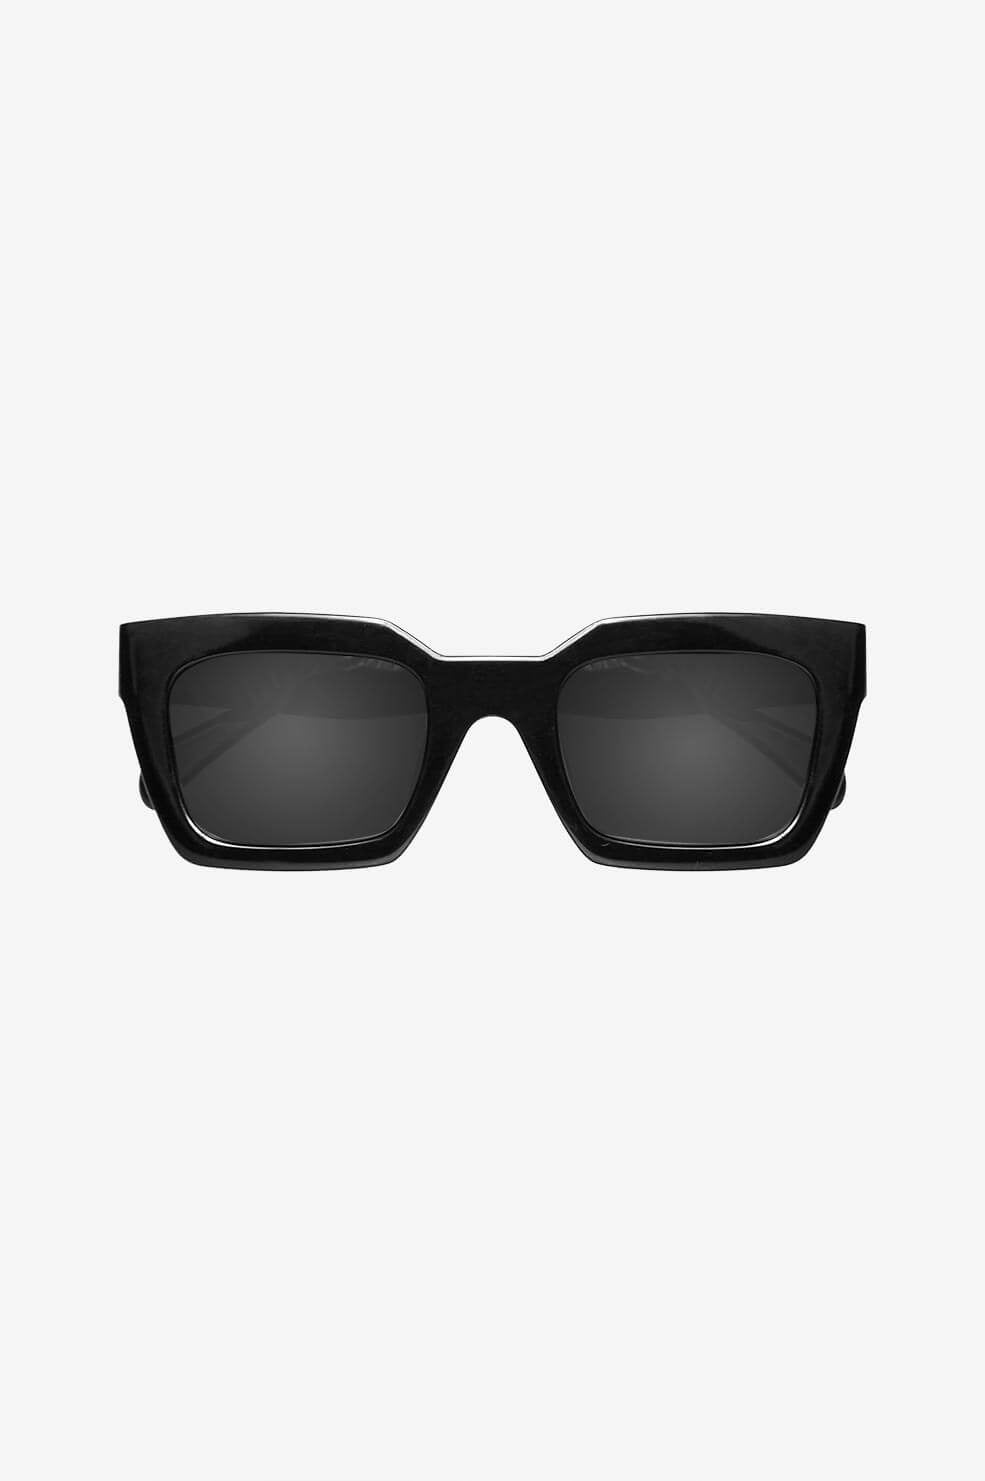 ANINE BING Indio Sunglasses - Black